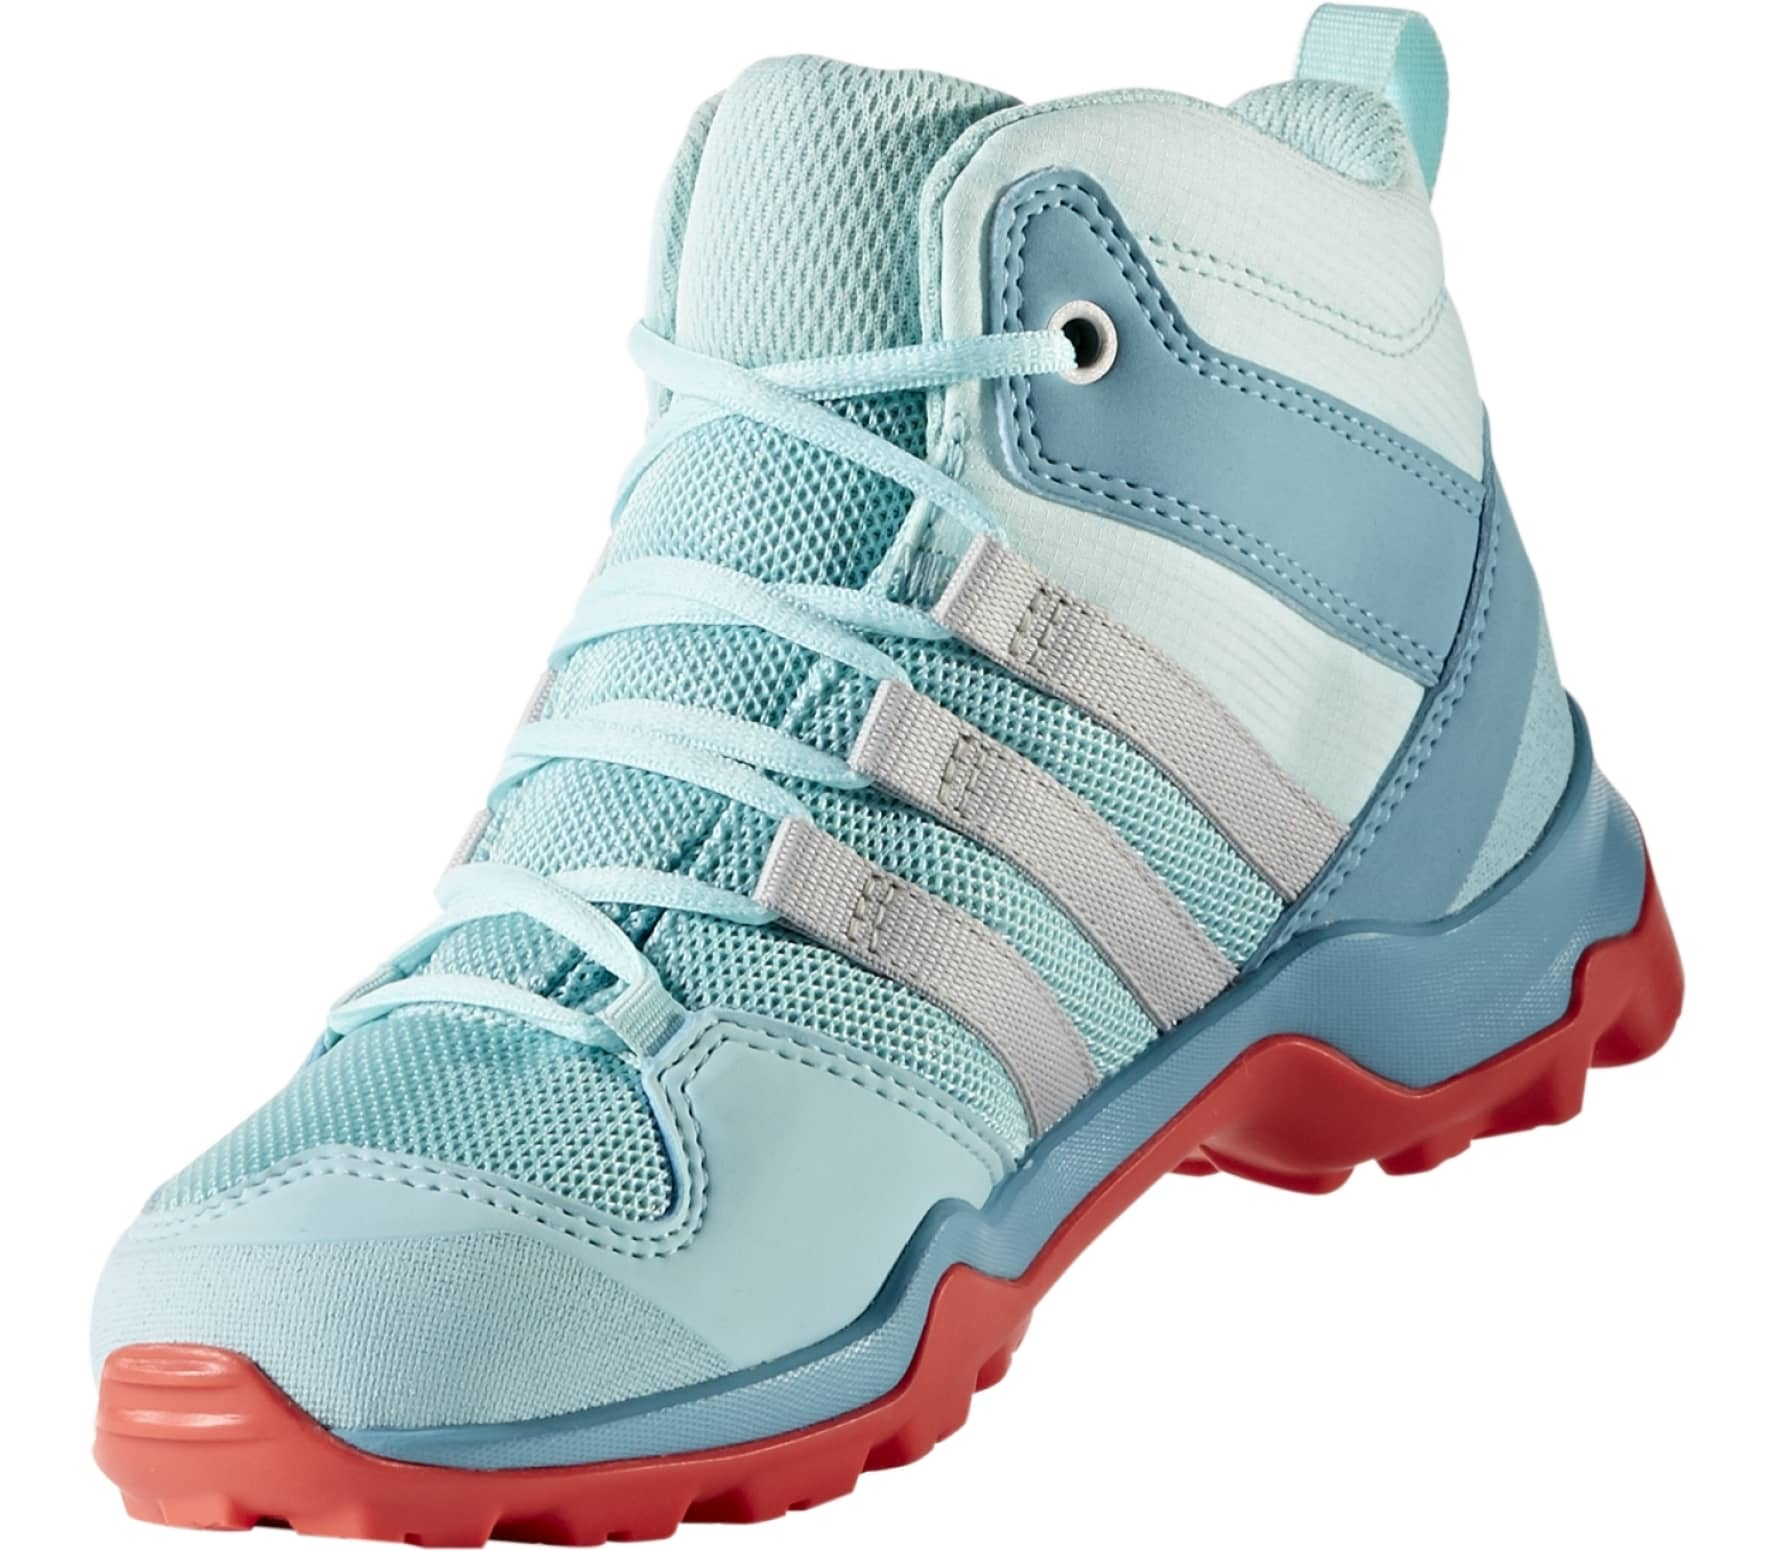 0ef73202e64d0 Adidas - Terrex AX2R MID CP Children hiking shoes (light blue red ...